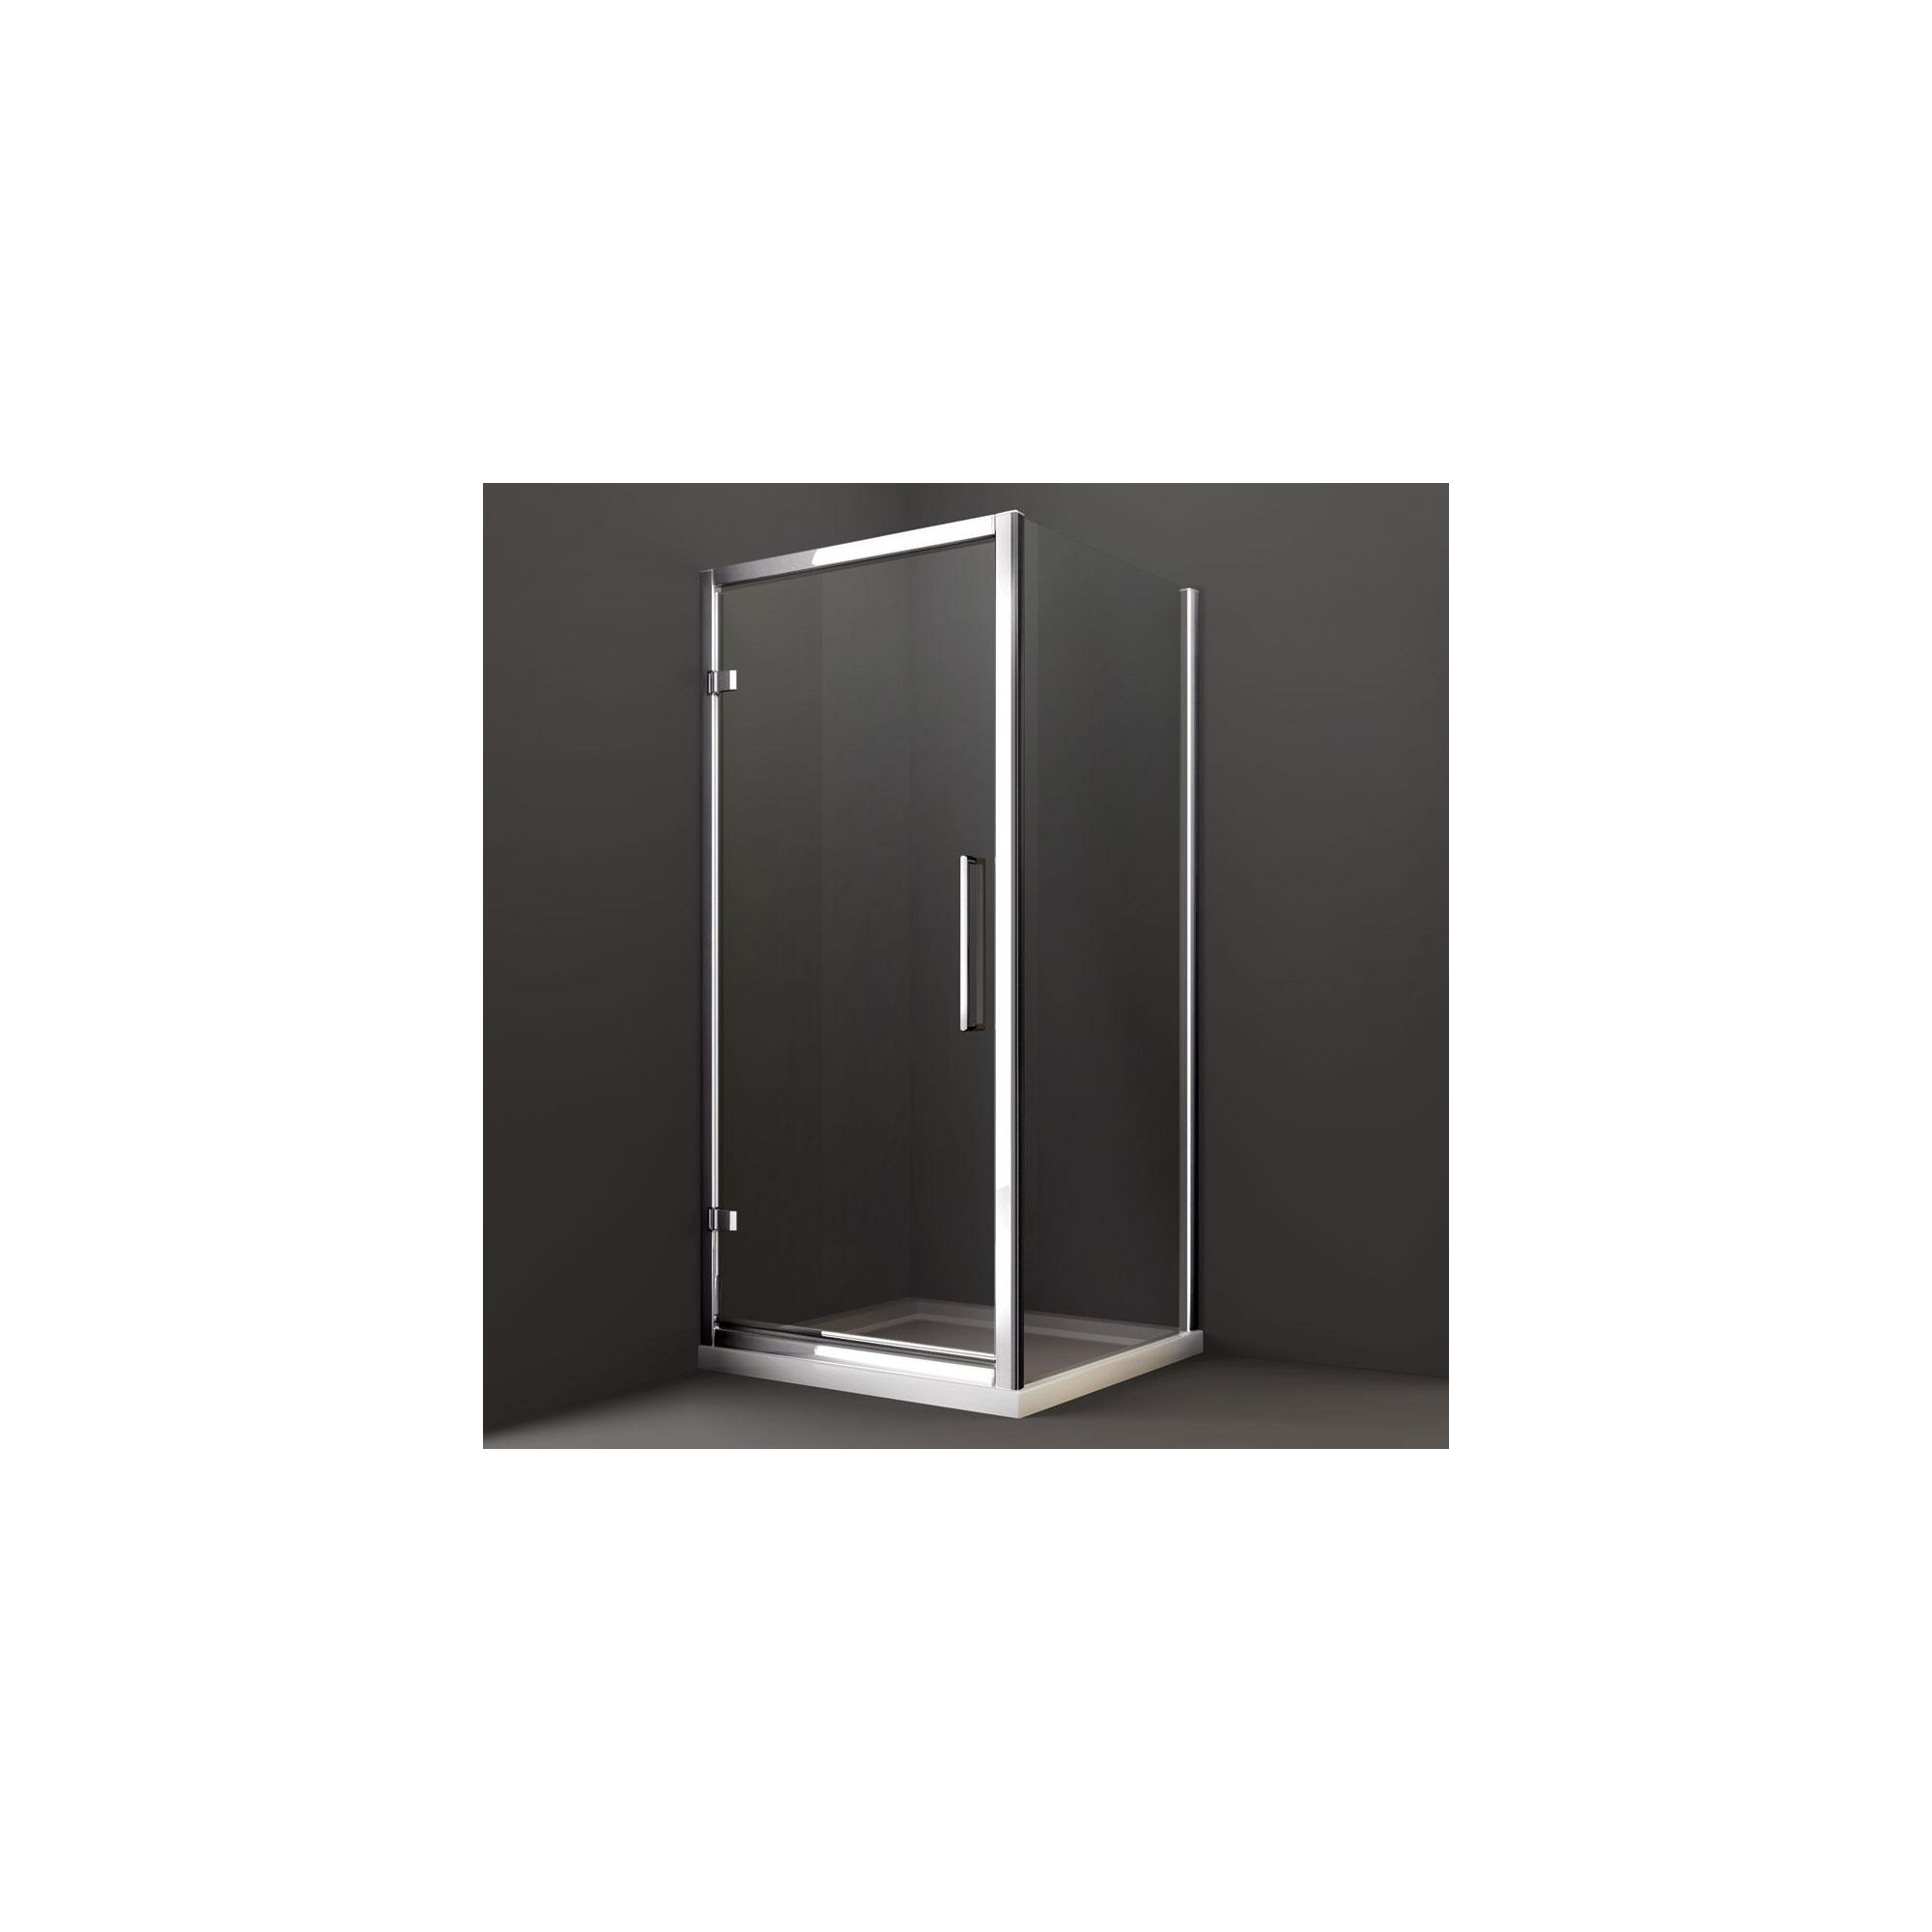 Merlyn Series 8 Hinged Shower Door, 760mm Wide, Chrome Frame, 8mm Glass at Tesco Direct